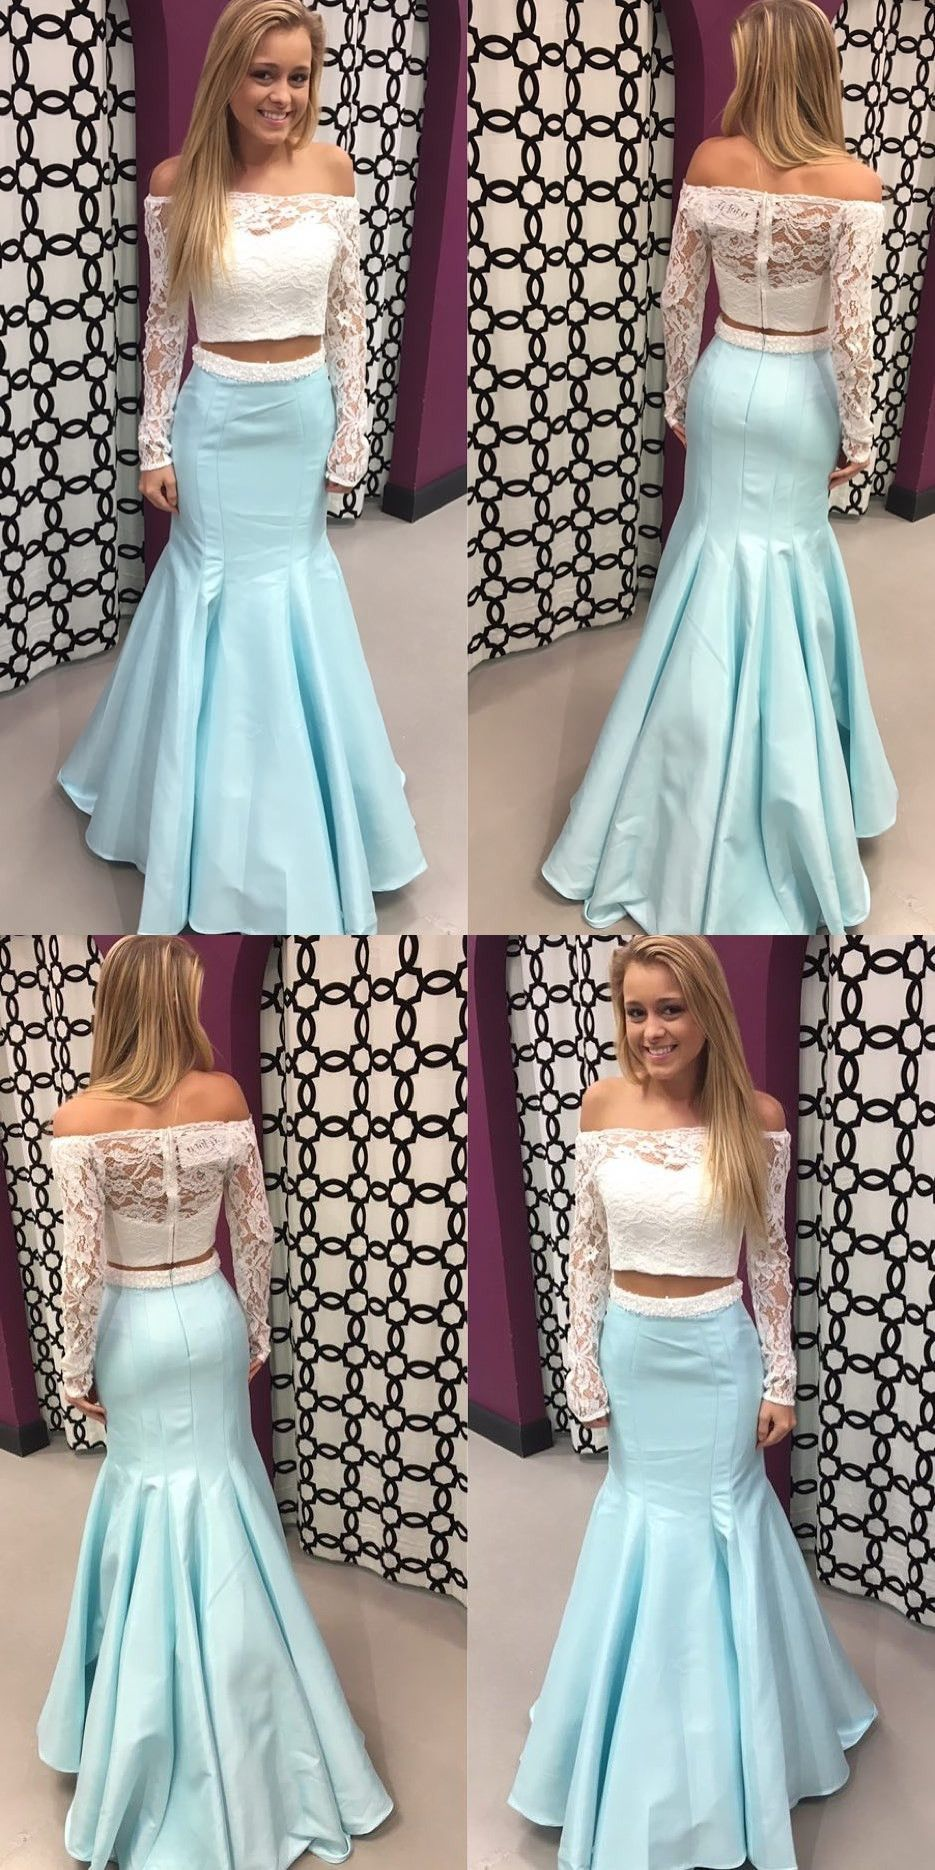 Gorgeous two piece off the shoulder white lace and ice blue mermaid